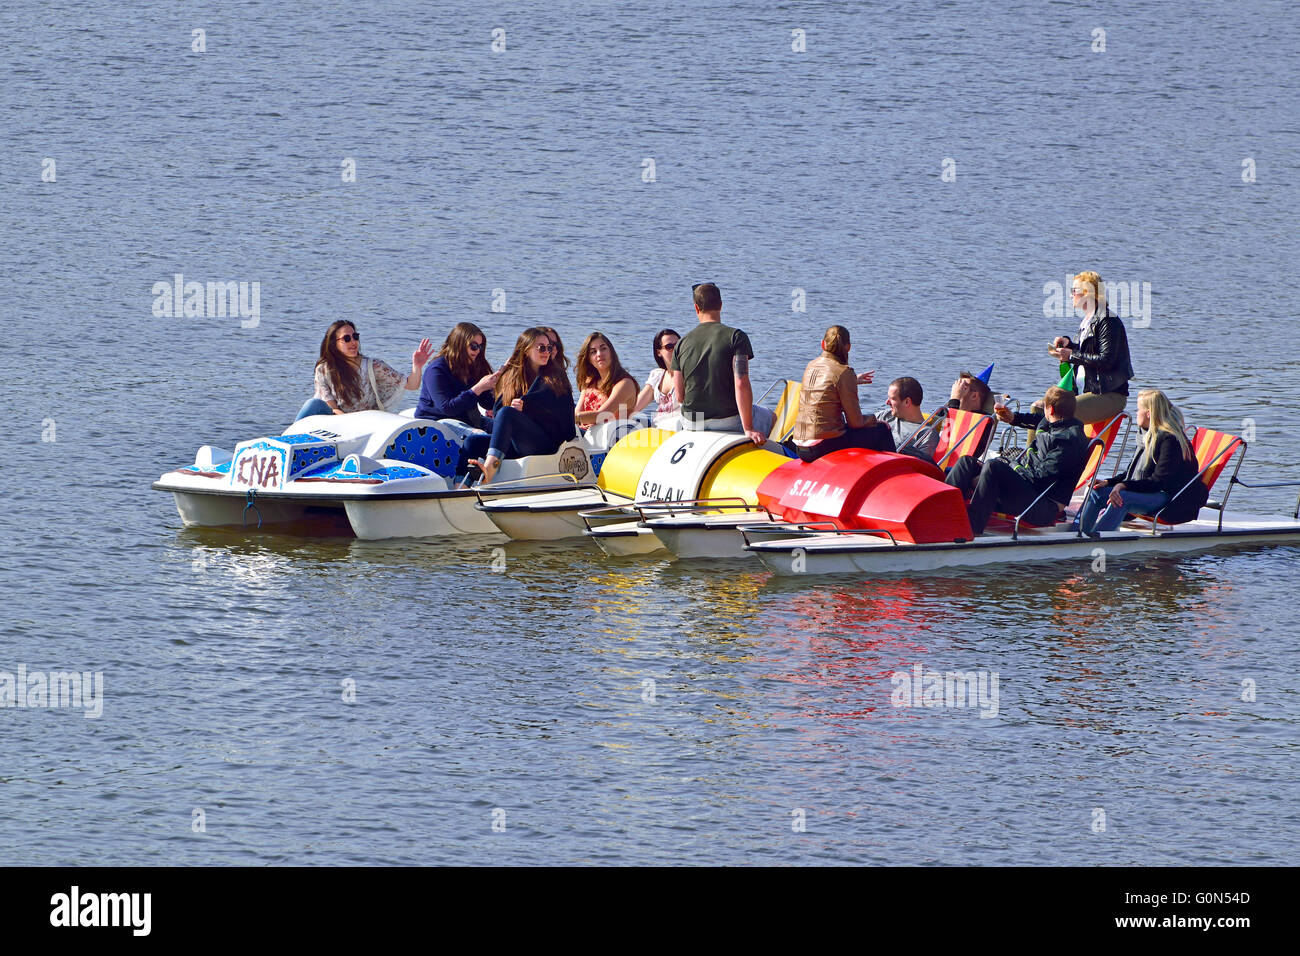 Prague, Czech Republic. Paddle boats for hire on the River Vltava - boys' boats meeting girls' boats - Stock Image